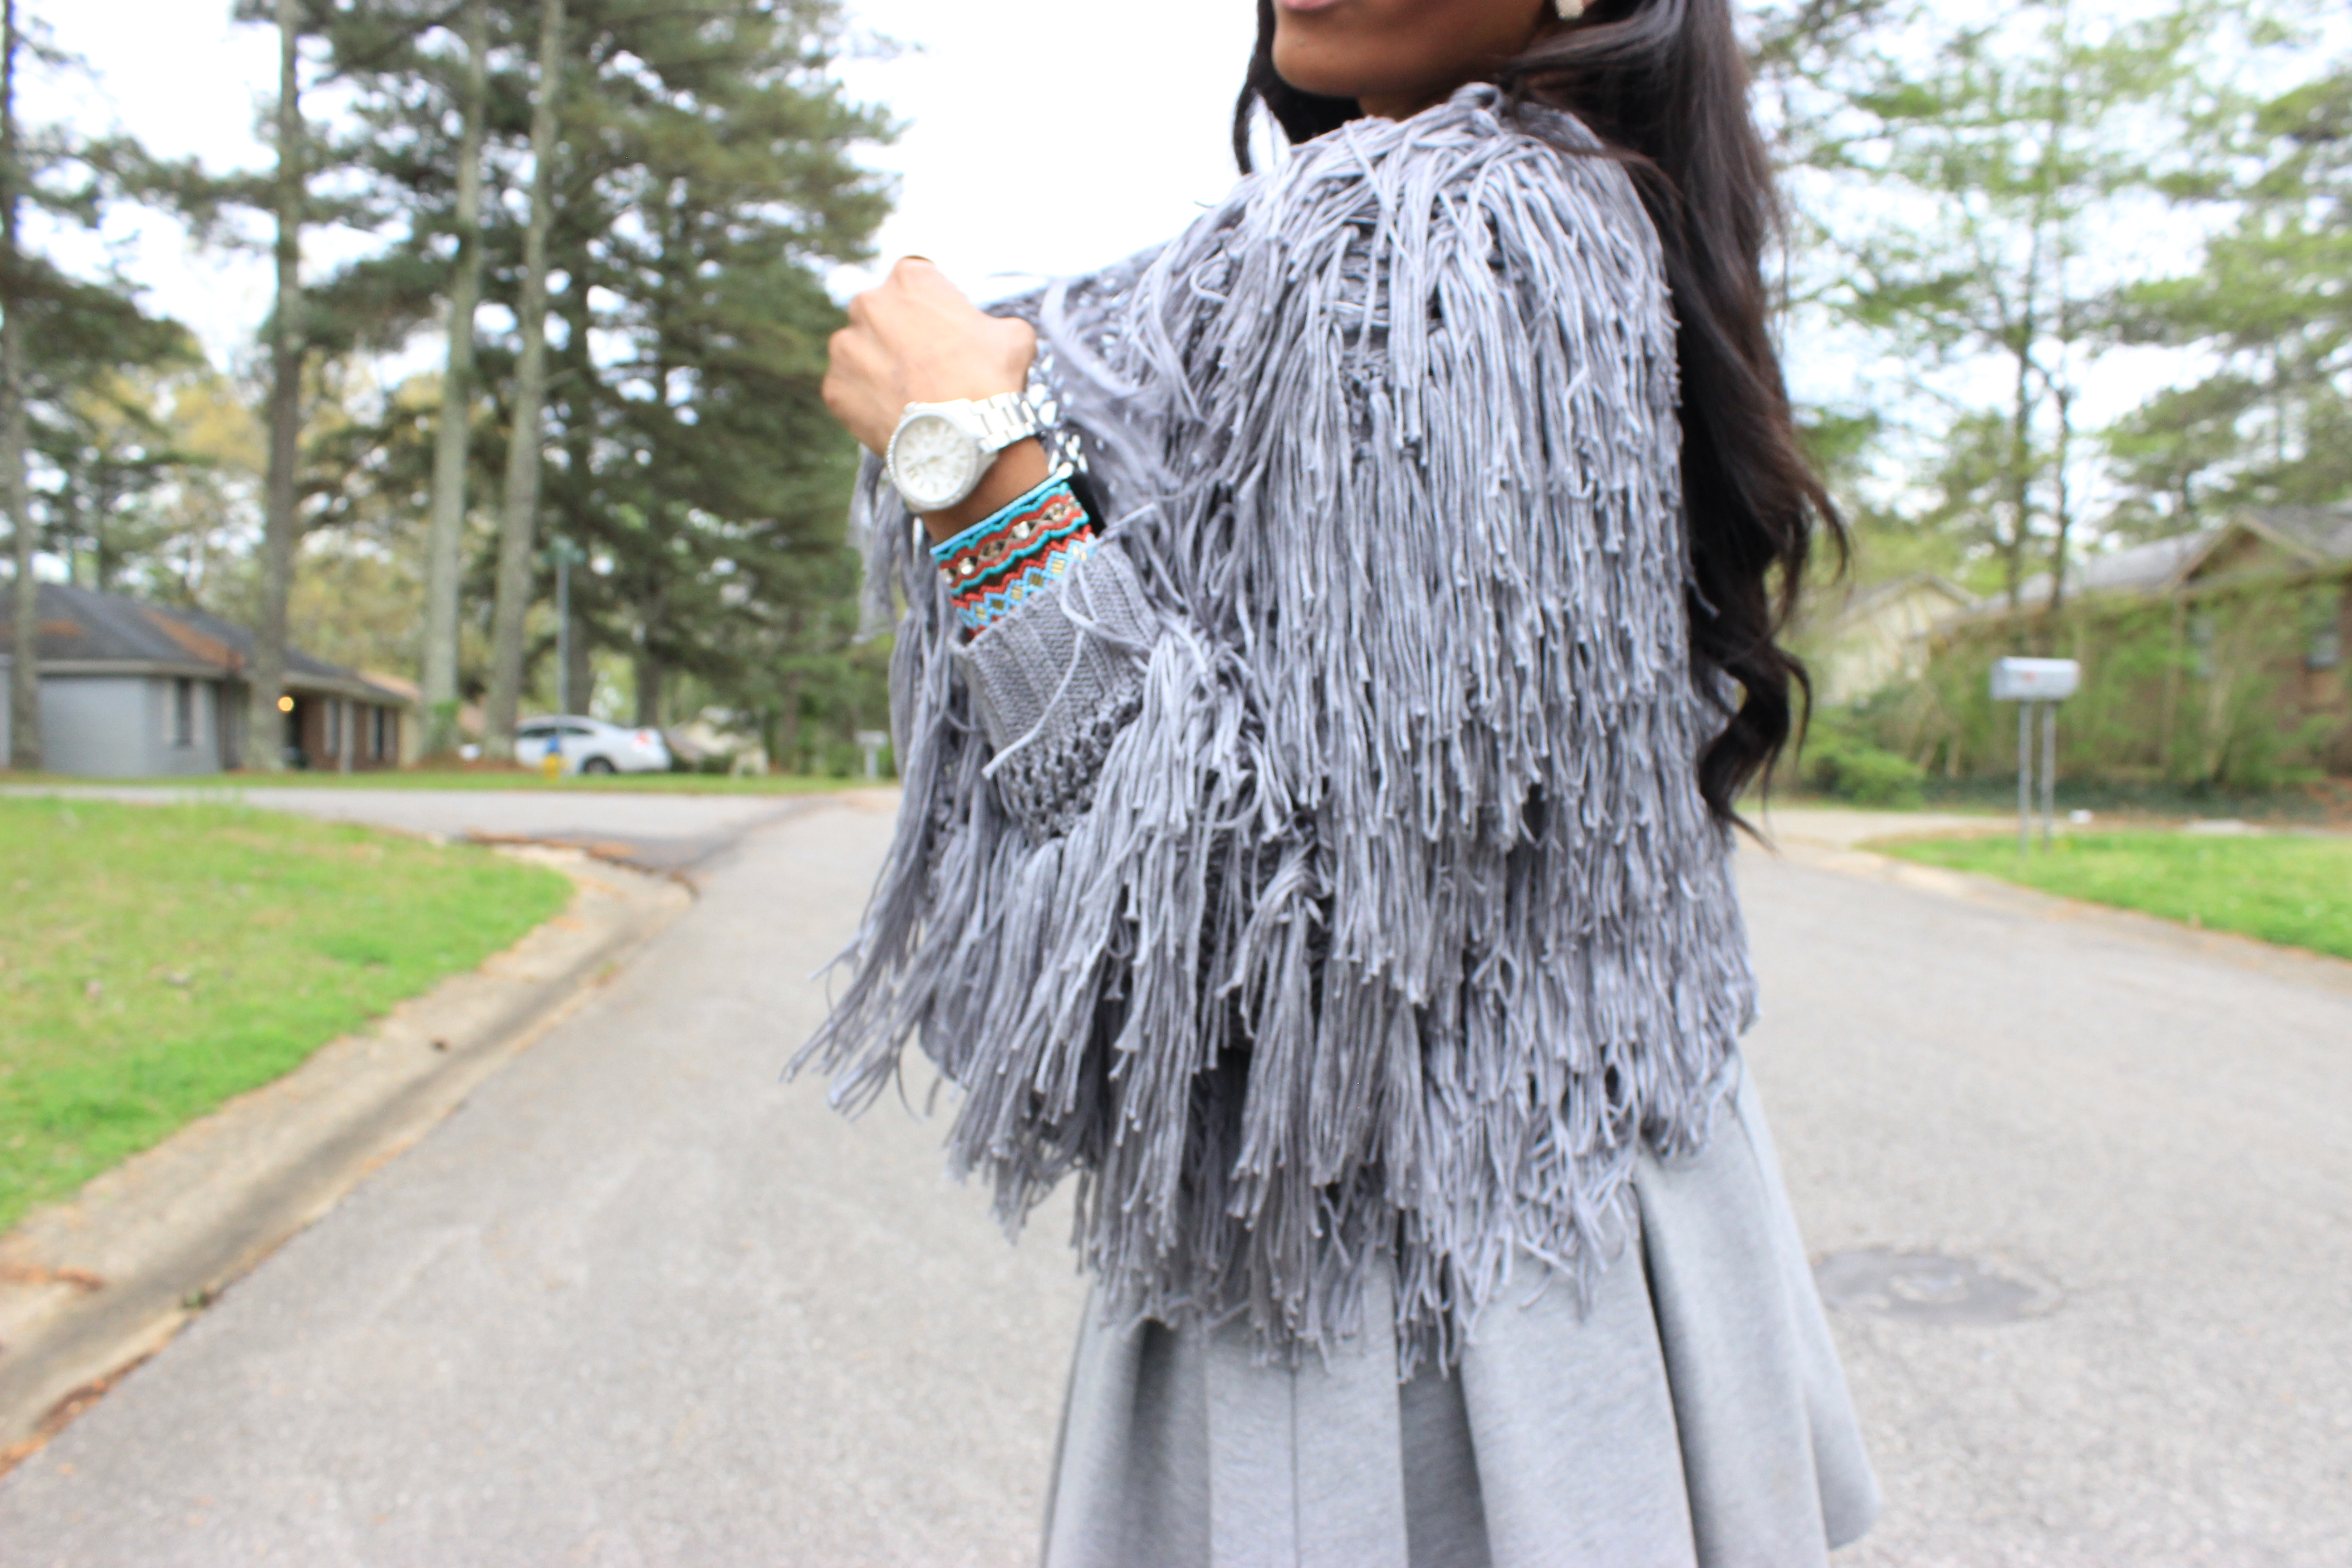 Forever-21-Fringed Open-Knit- Cardigan-Target-Merona-Skater-Skirt-Merona-Pleated-skirt-target merona Modernist Skirt-Taget-sequin-clutch-Nasty Gal On A Level Heel - Nude-MAC-Cosmetics-Lipstick-Faux-Oohlalablog-12